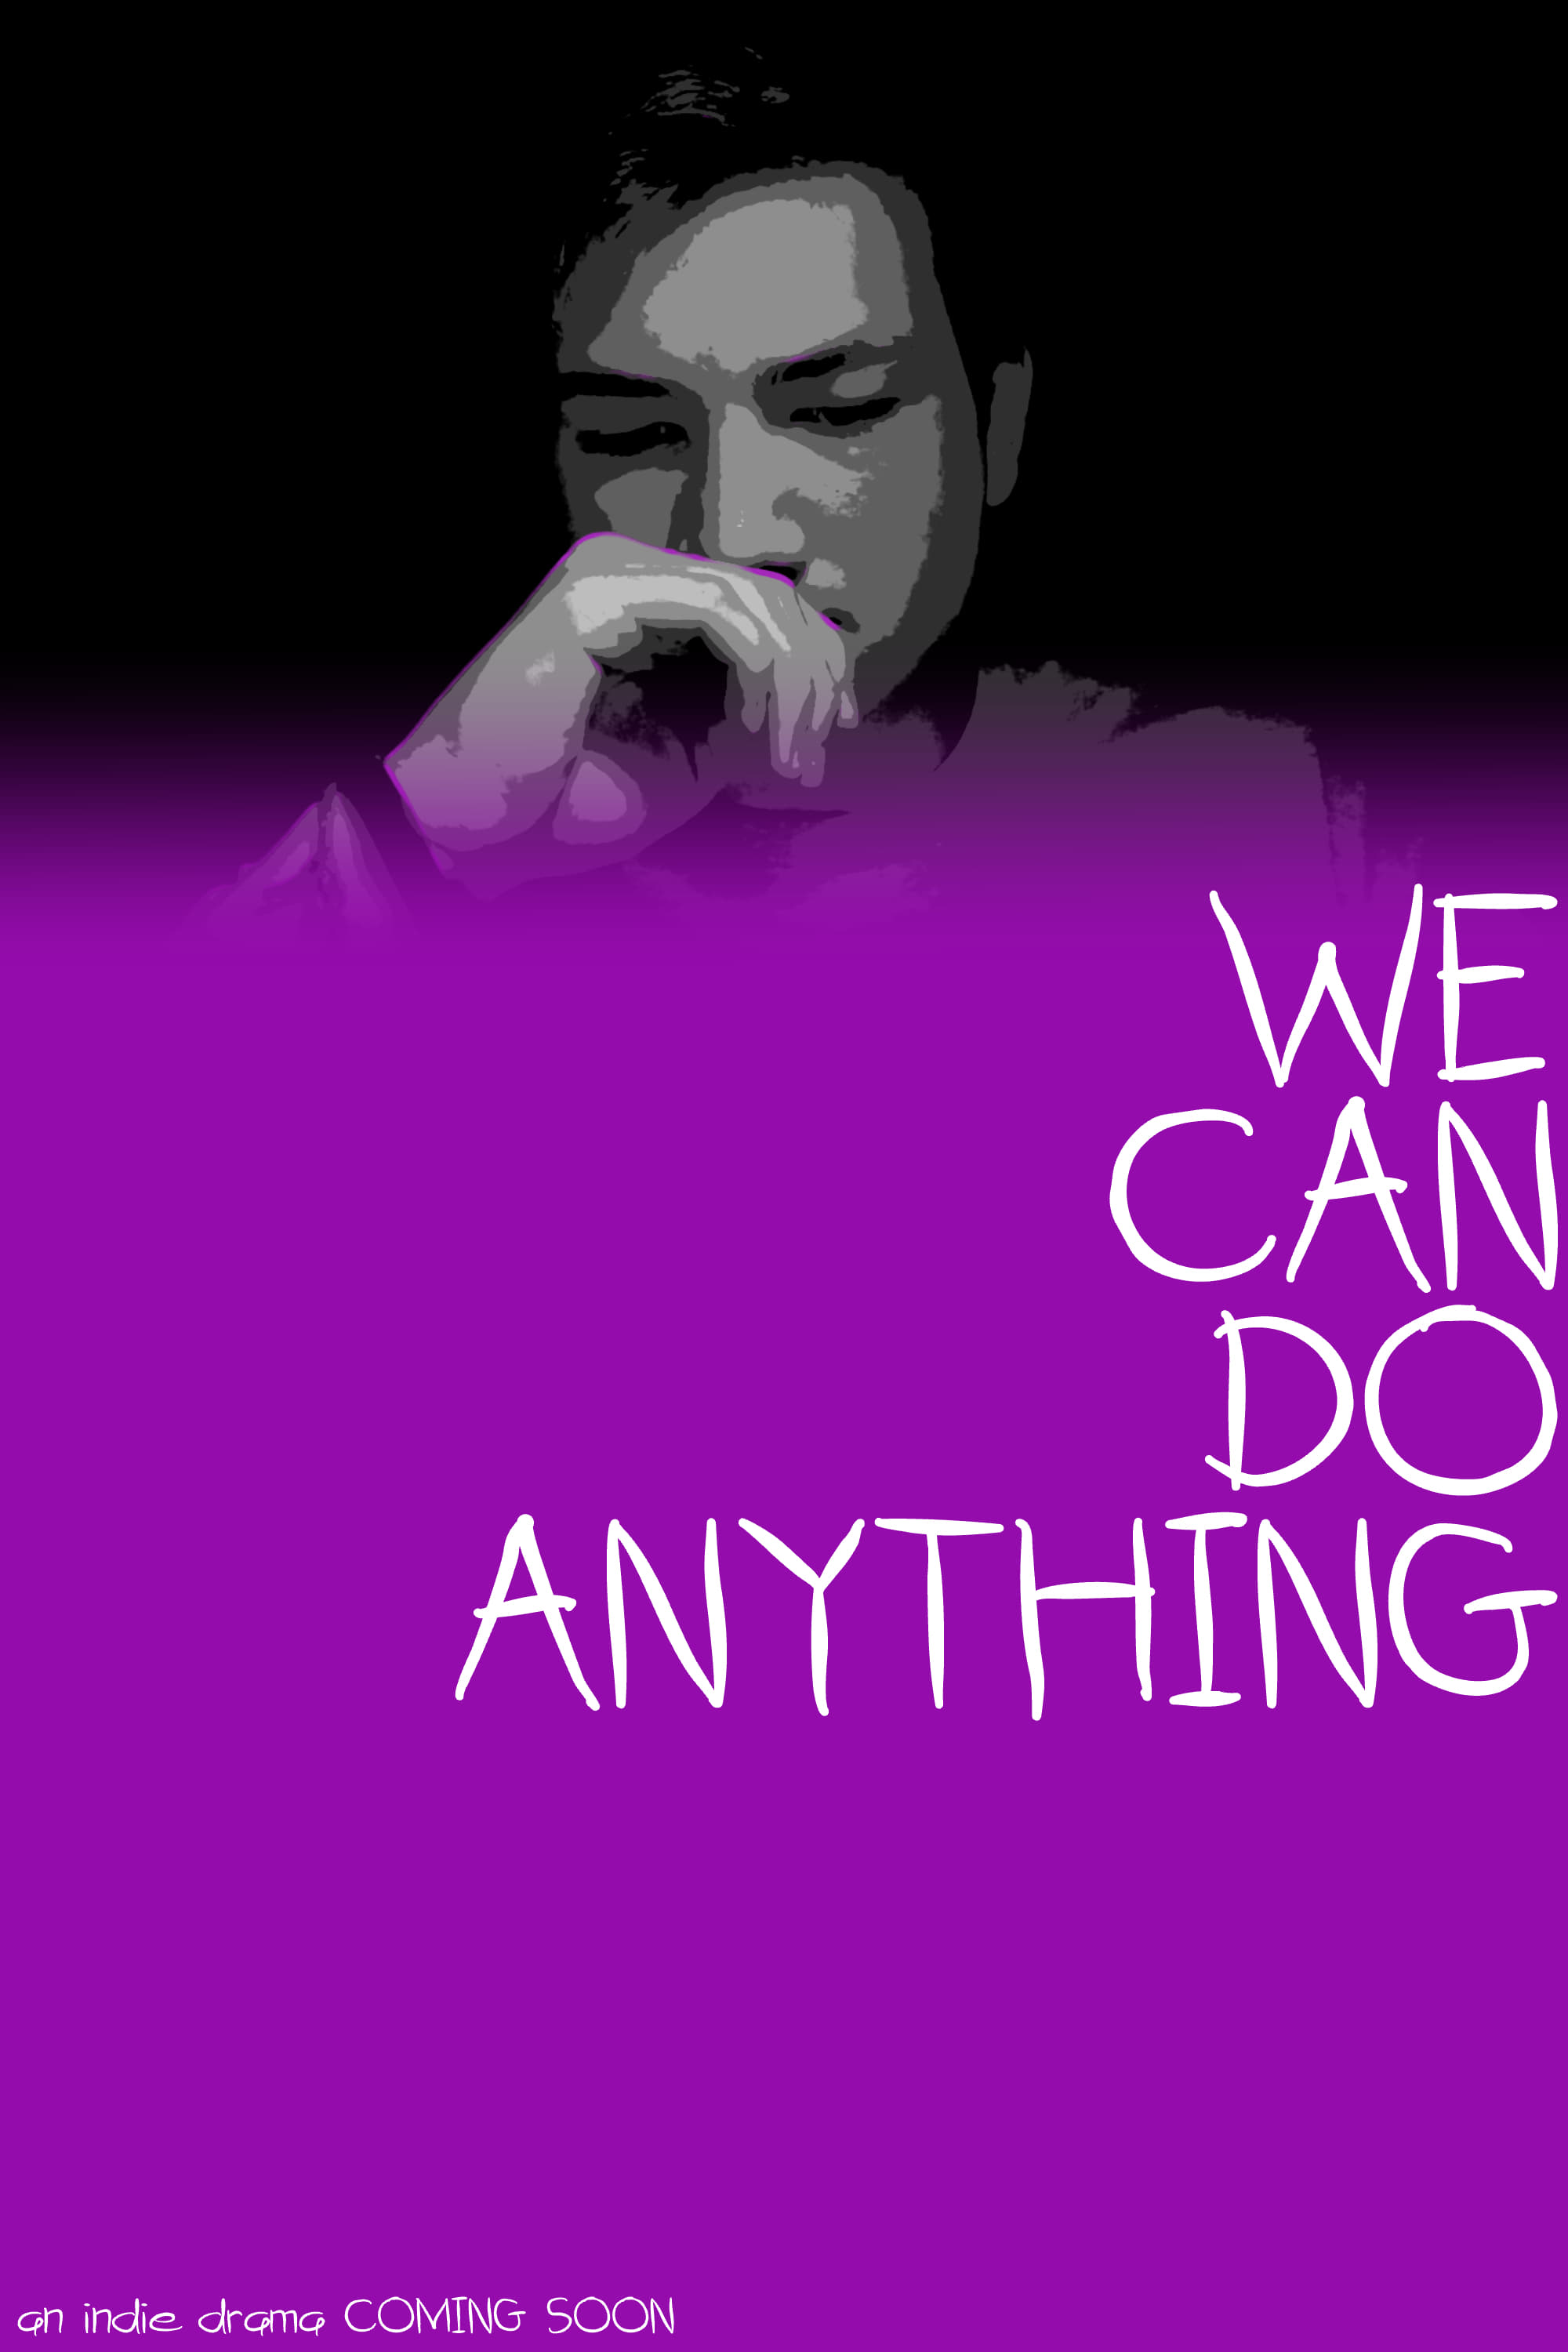 We Can Do Anything (1970)